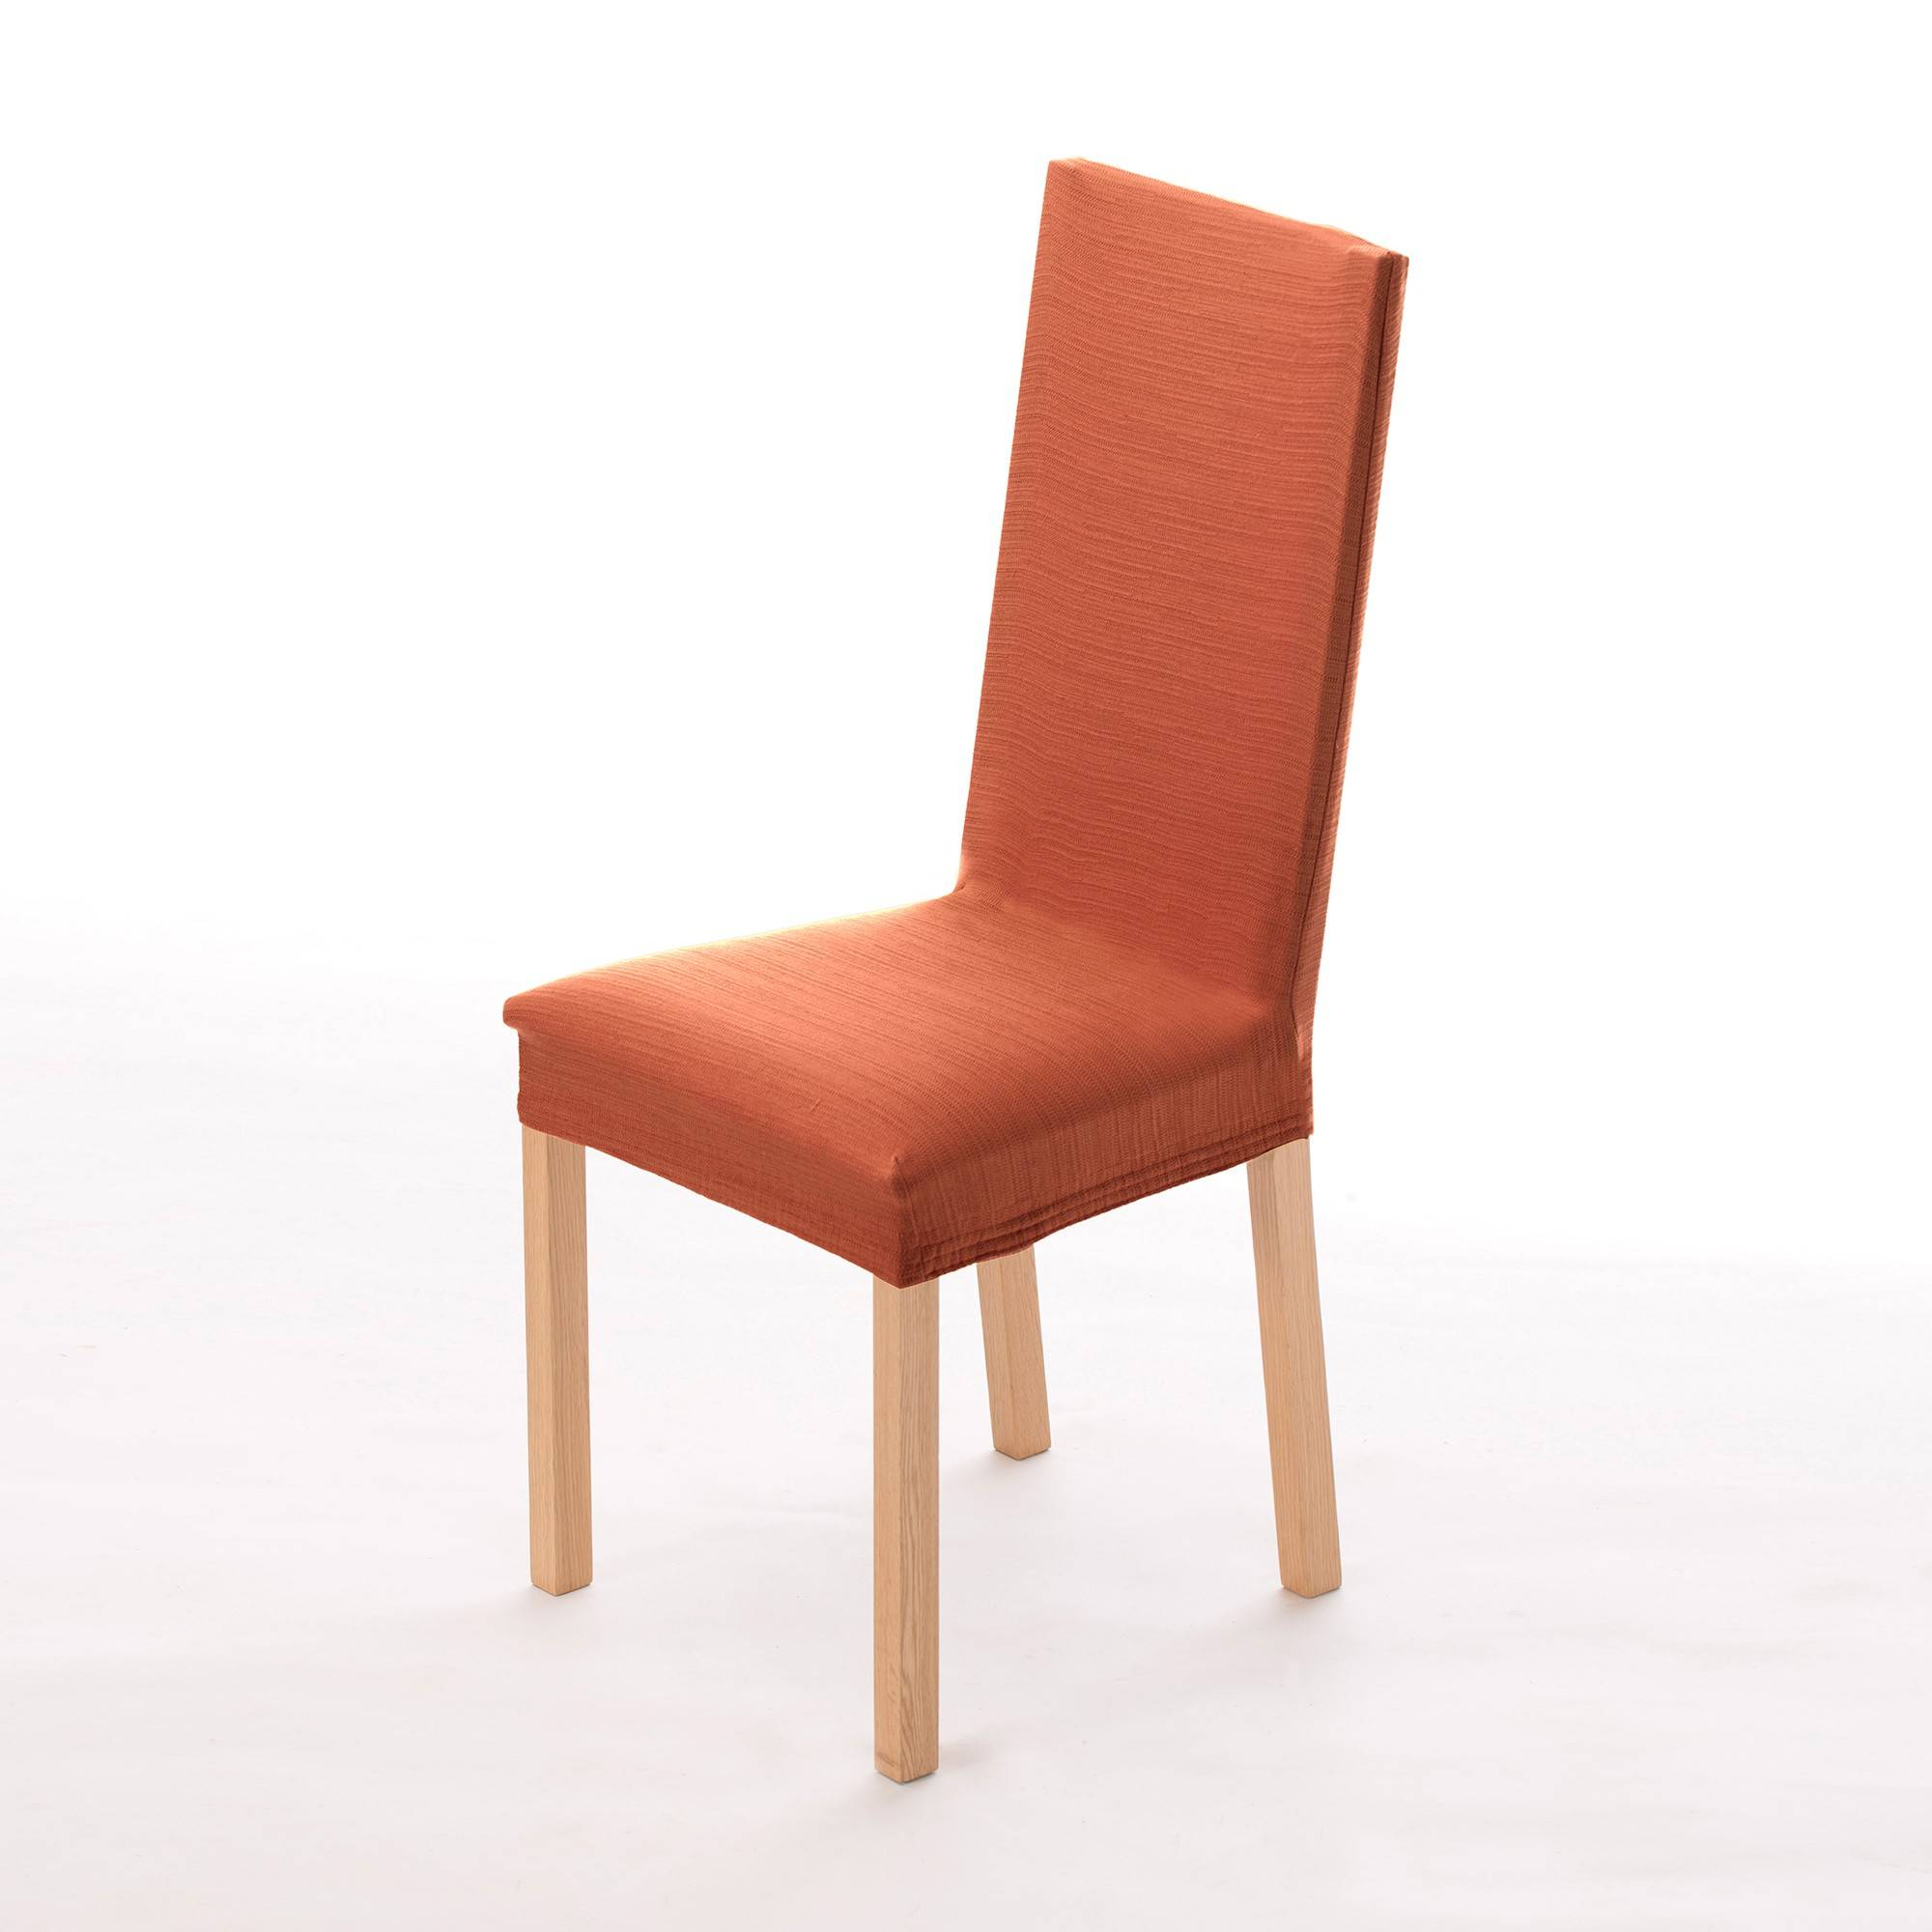 Housse chaise extensible - orange - Blancheporte